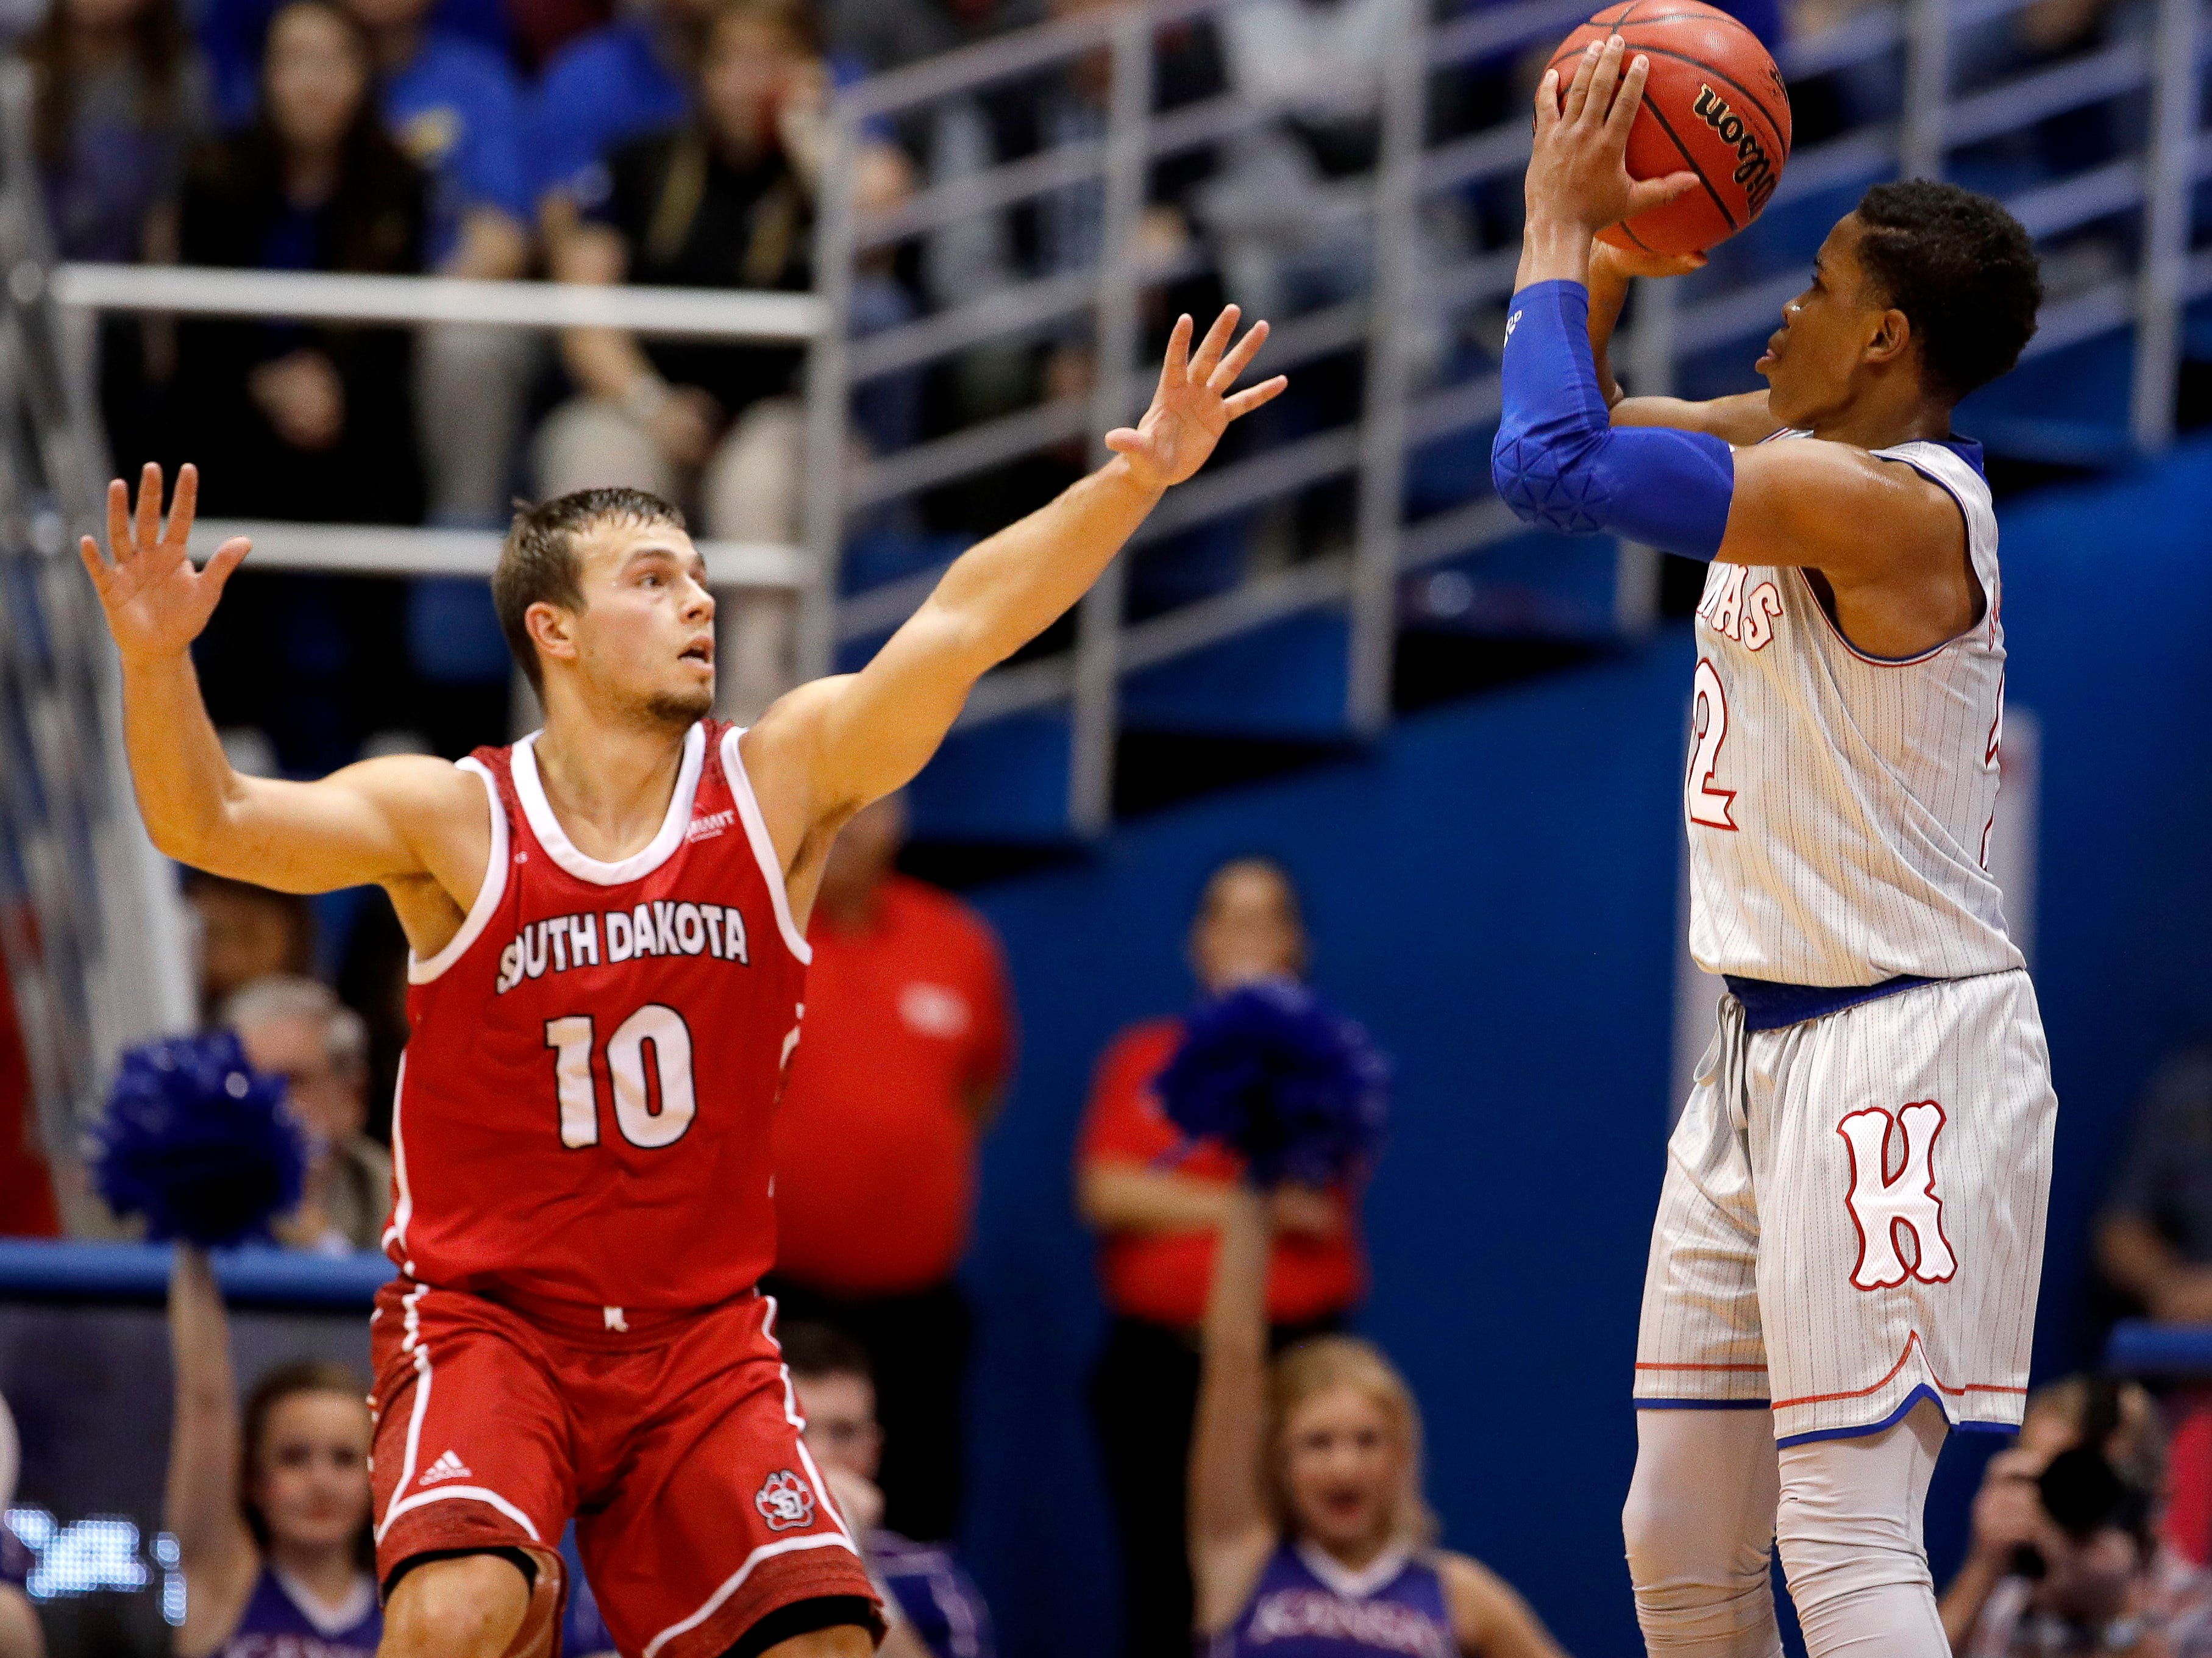 Kansas' Charlie Moore, right, shoots over South Dakota's Cody Kelley (10) during the second half of an NCAA college basketball game Tuesday, Dec. 18, 2018, in Lawrence, Kan. Kansas won 89-53. (AP Photo/Charlie Riedel)